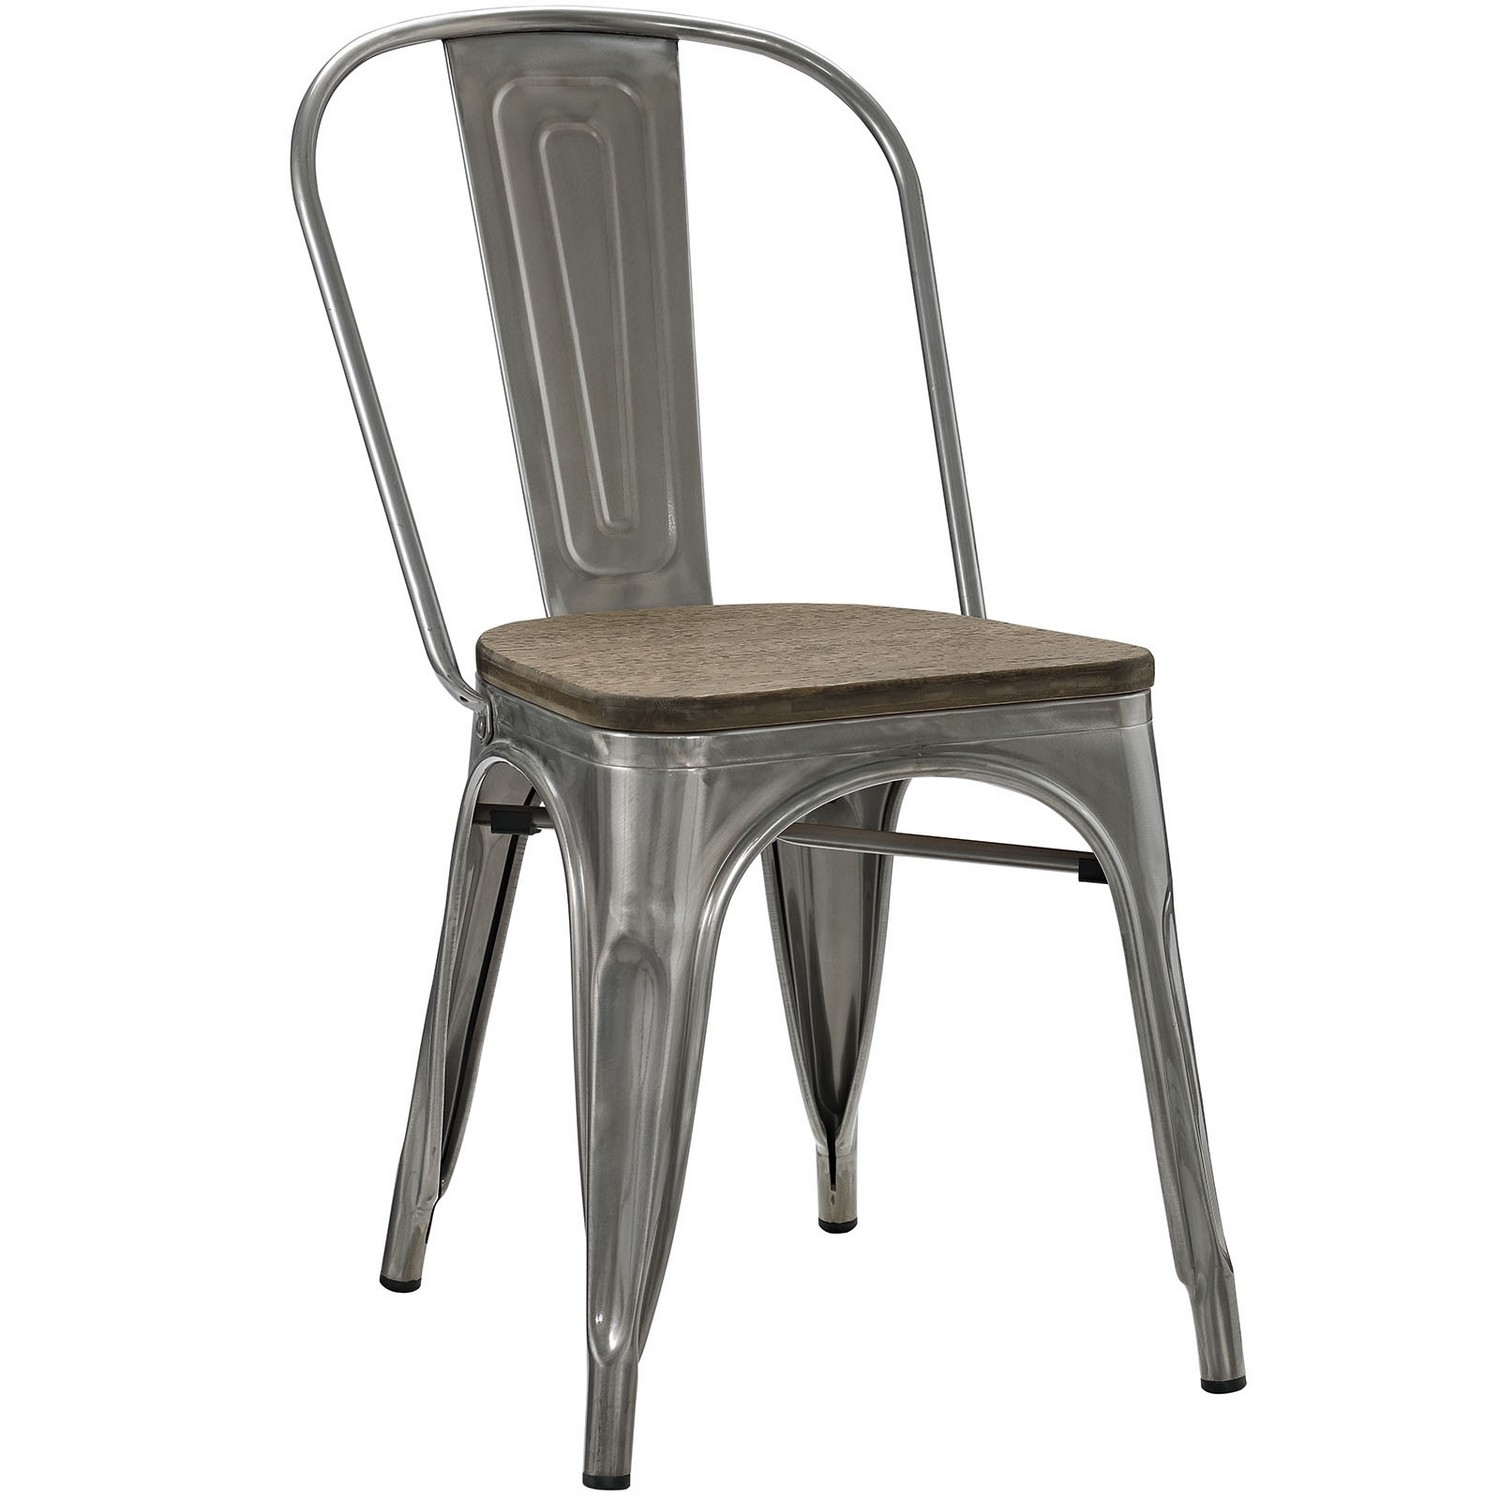 Modway Promenade Bamboo Side Chair - GunMetal